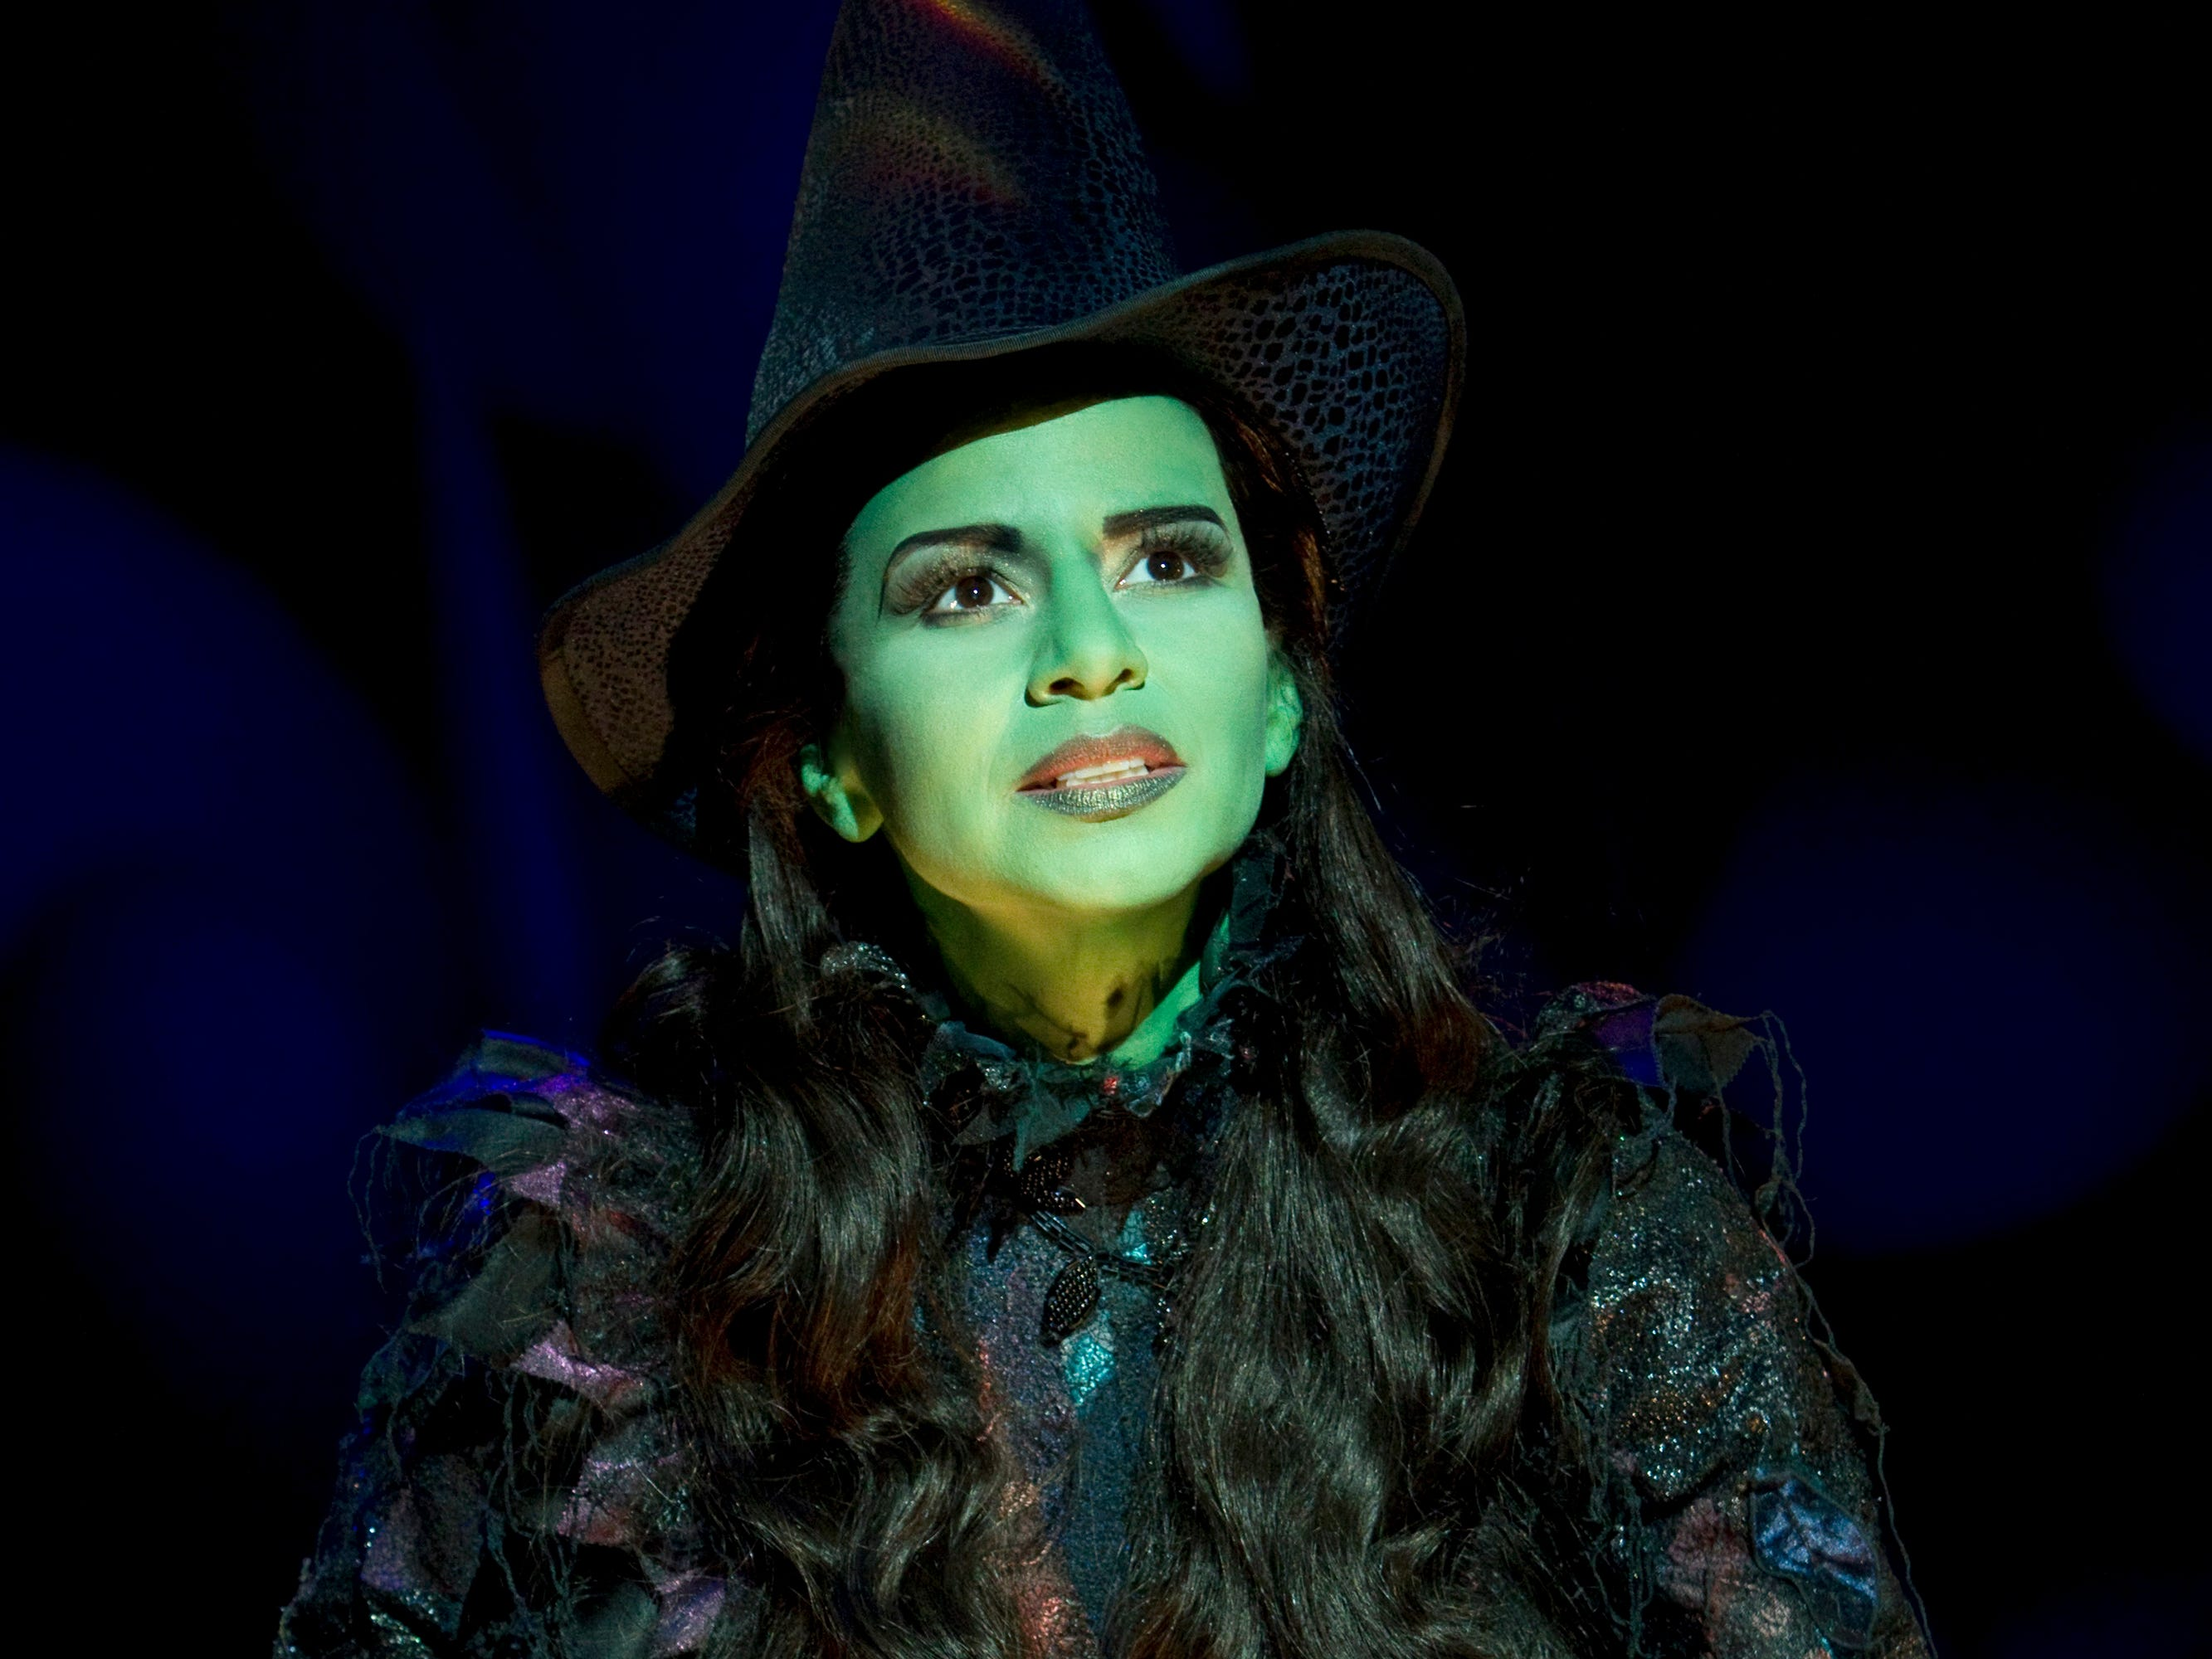 Mandy Gonzalez as Elphaba in the Broadway show Wicked. Photo by Joan Marcu [Via MerlinFTP Drop]